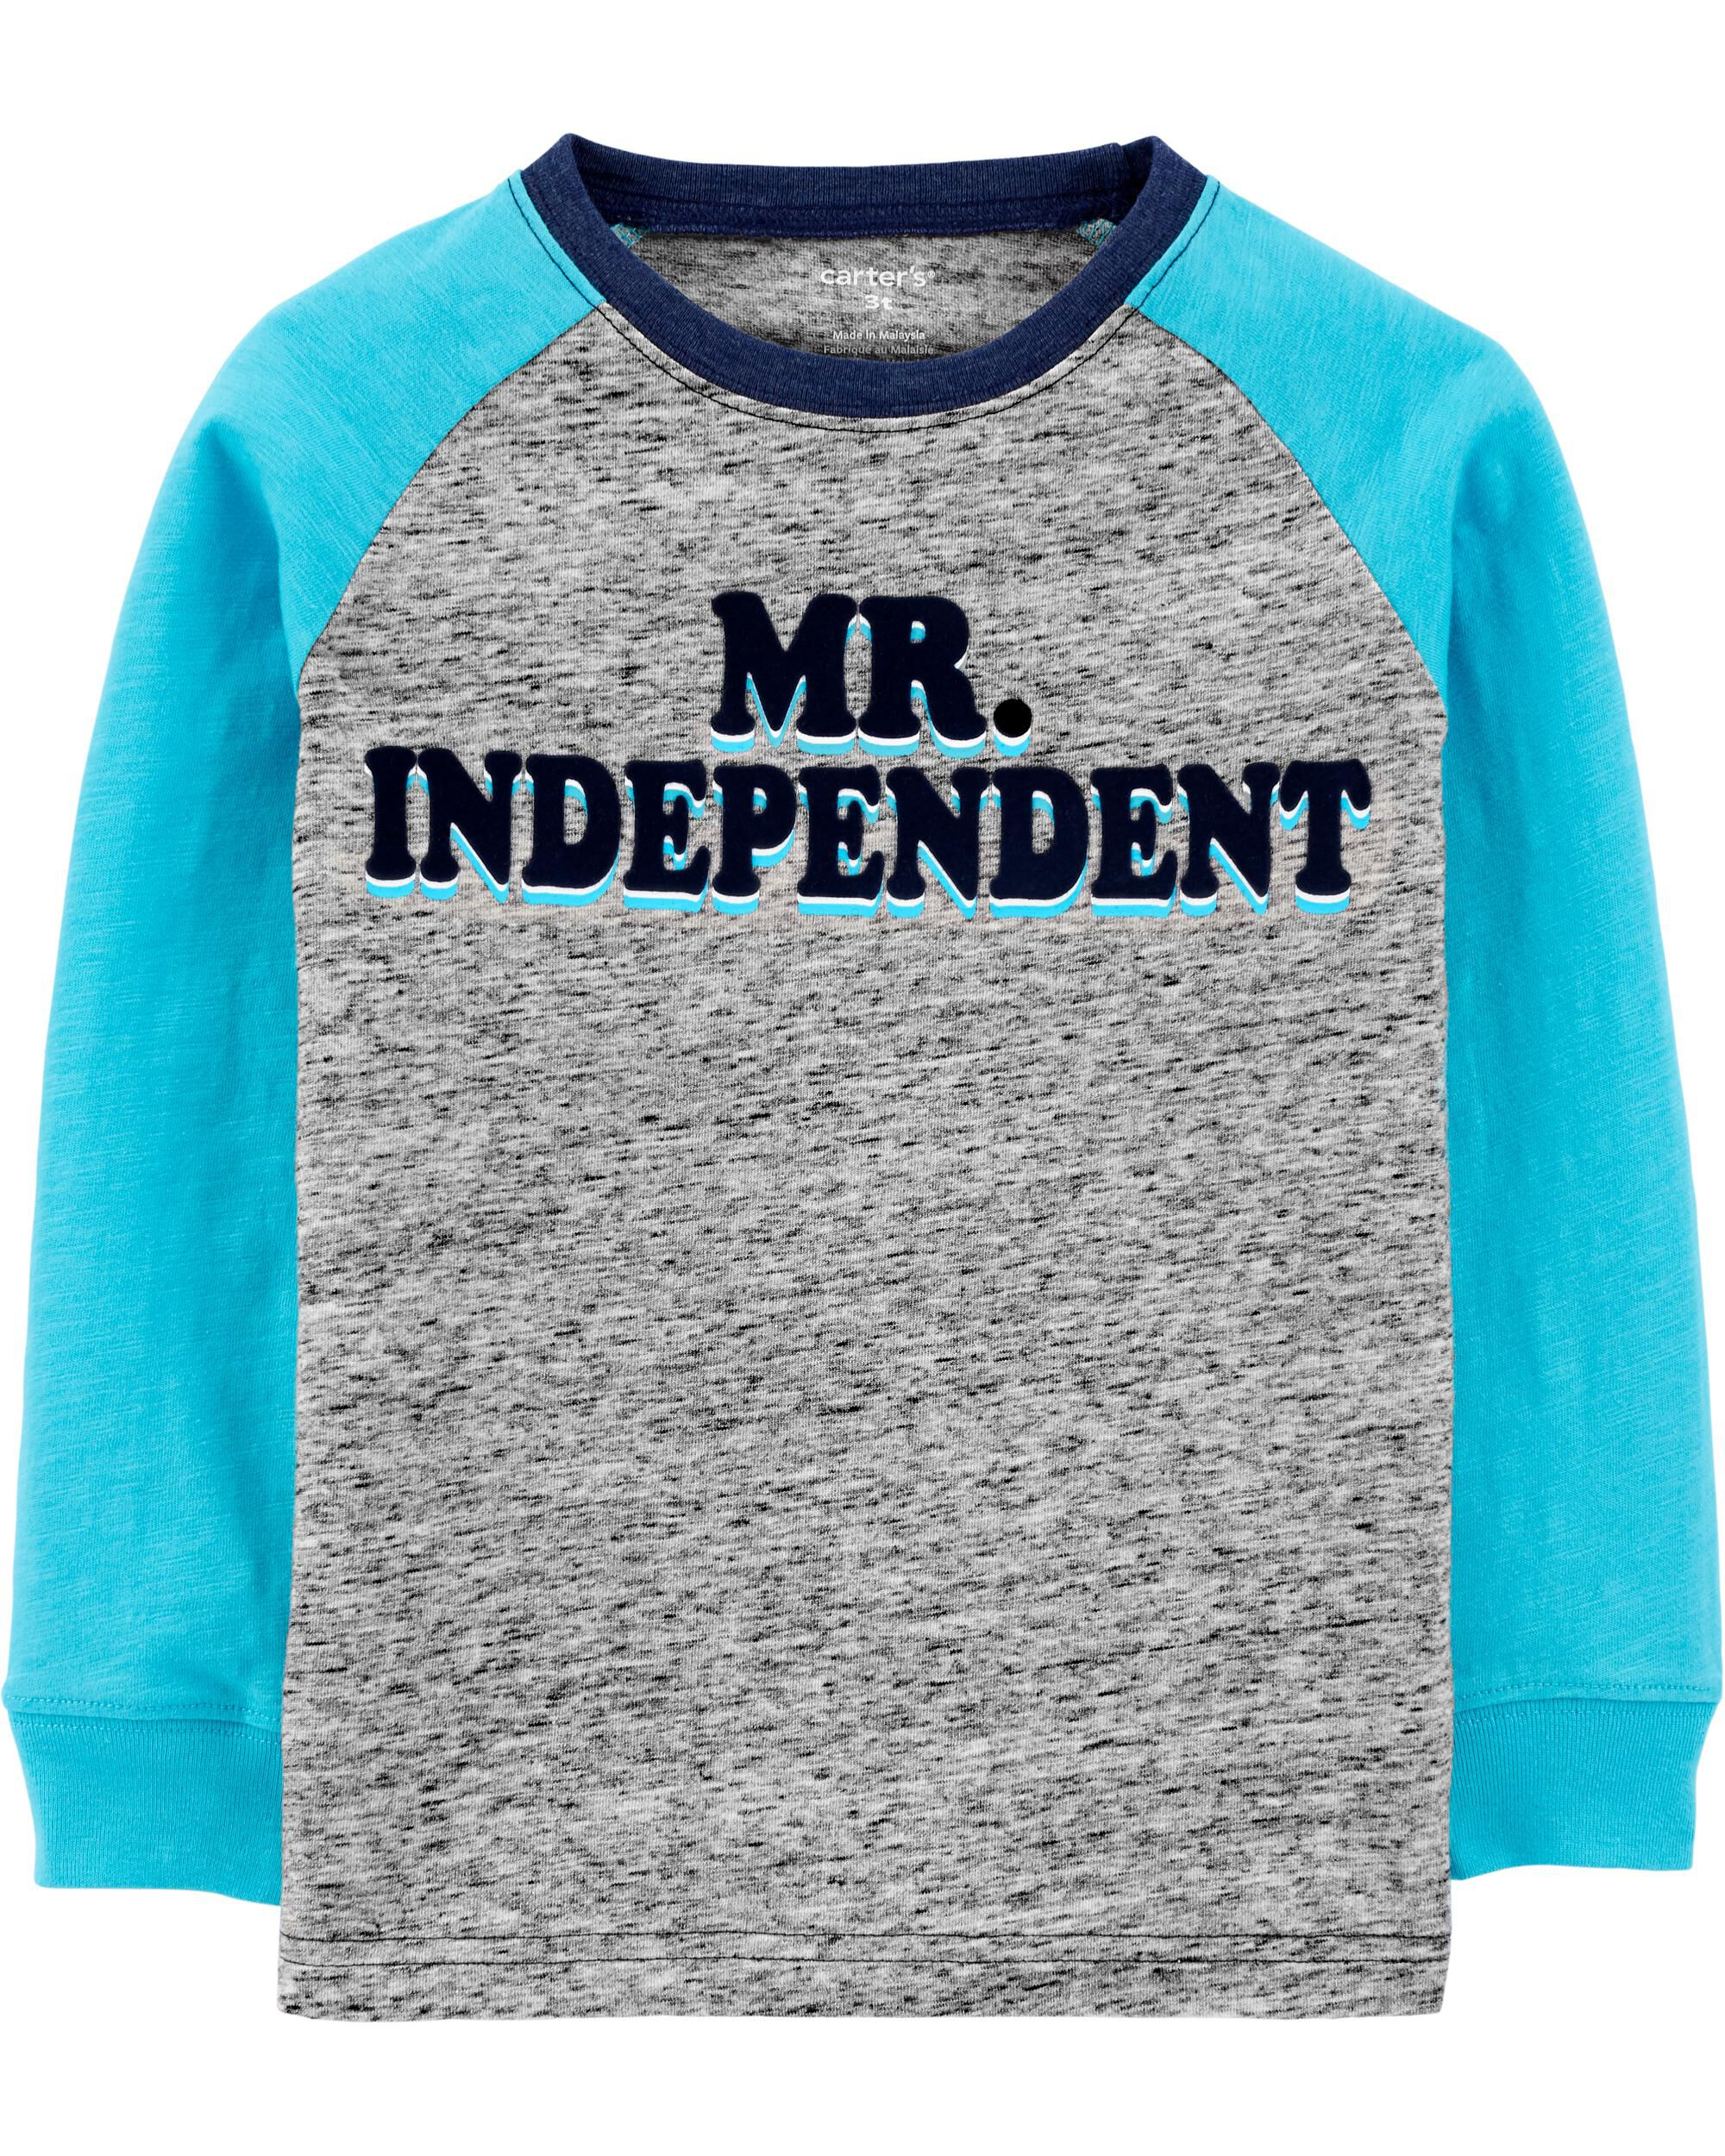 Mr. Independent Raglan Jersey Tee